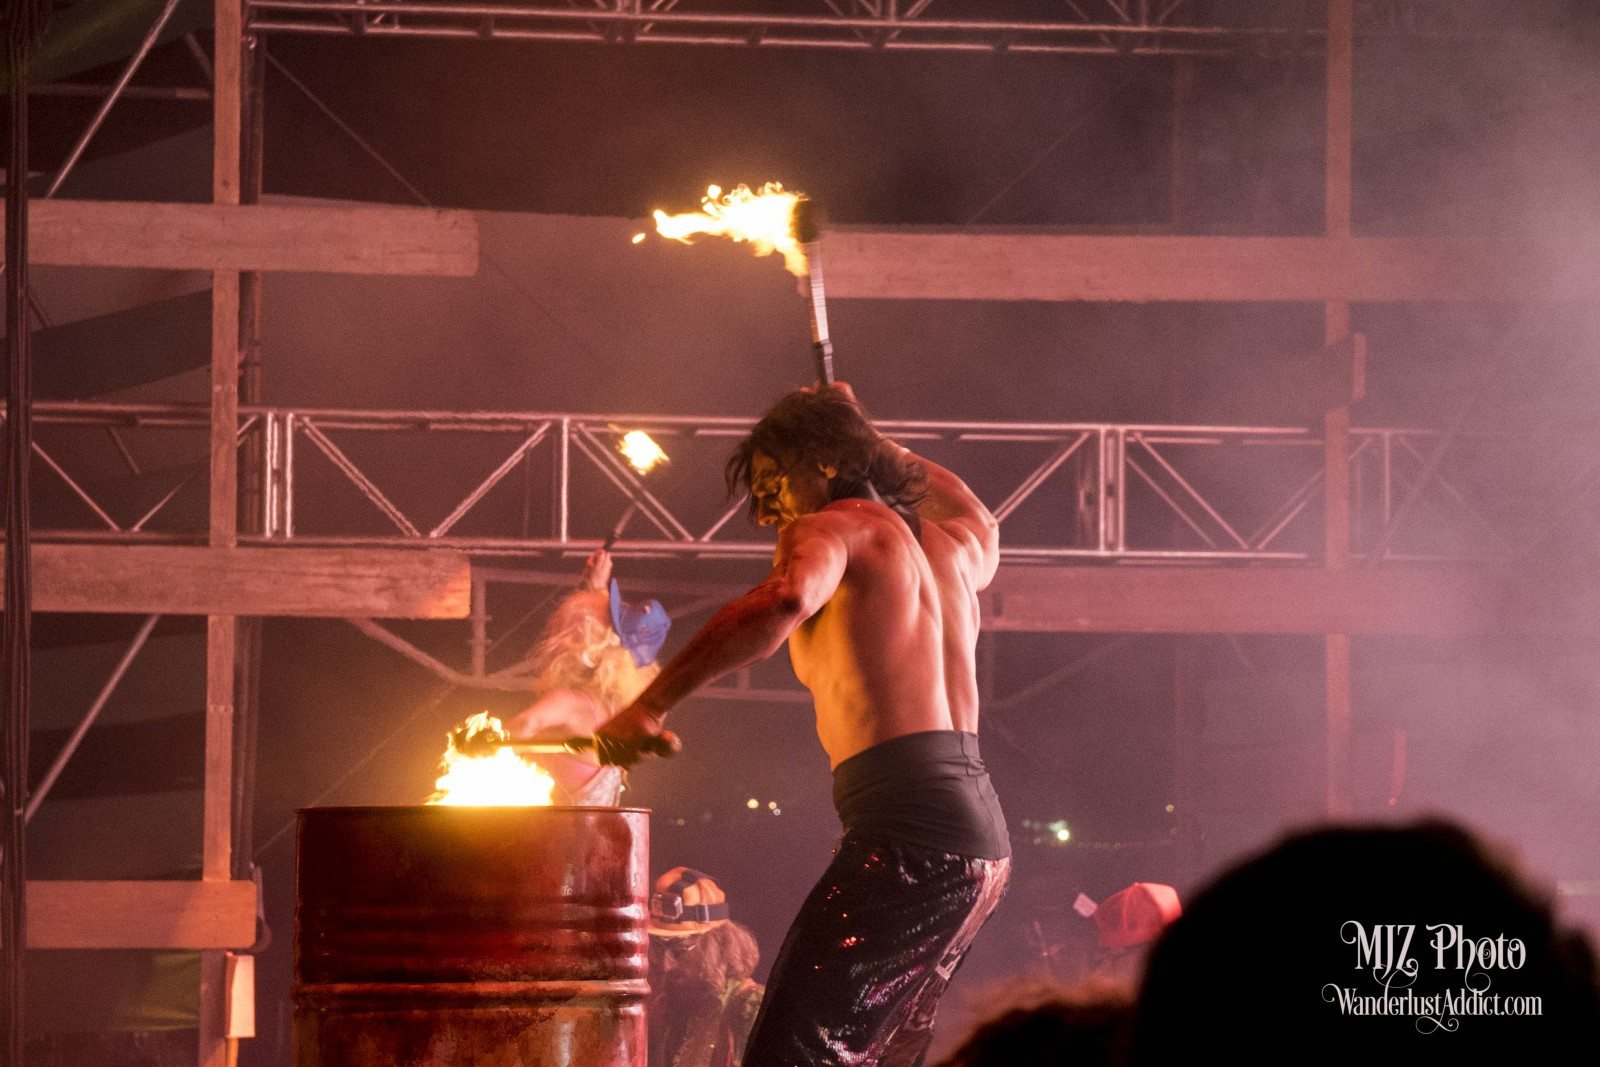 Rajiv Jain from lucent dossier experience